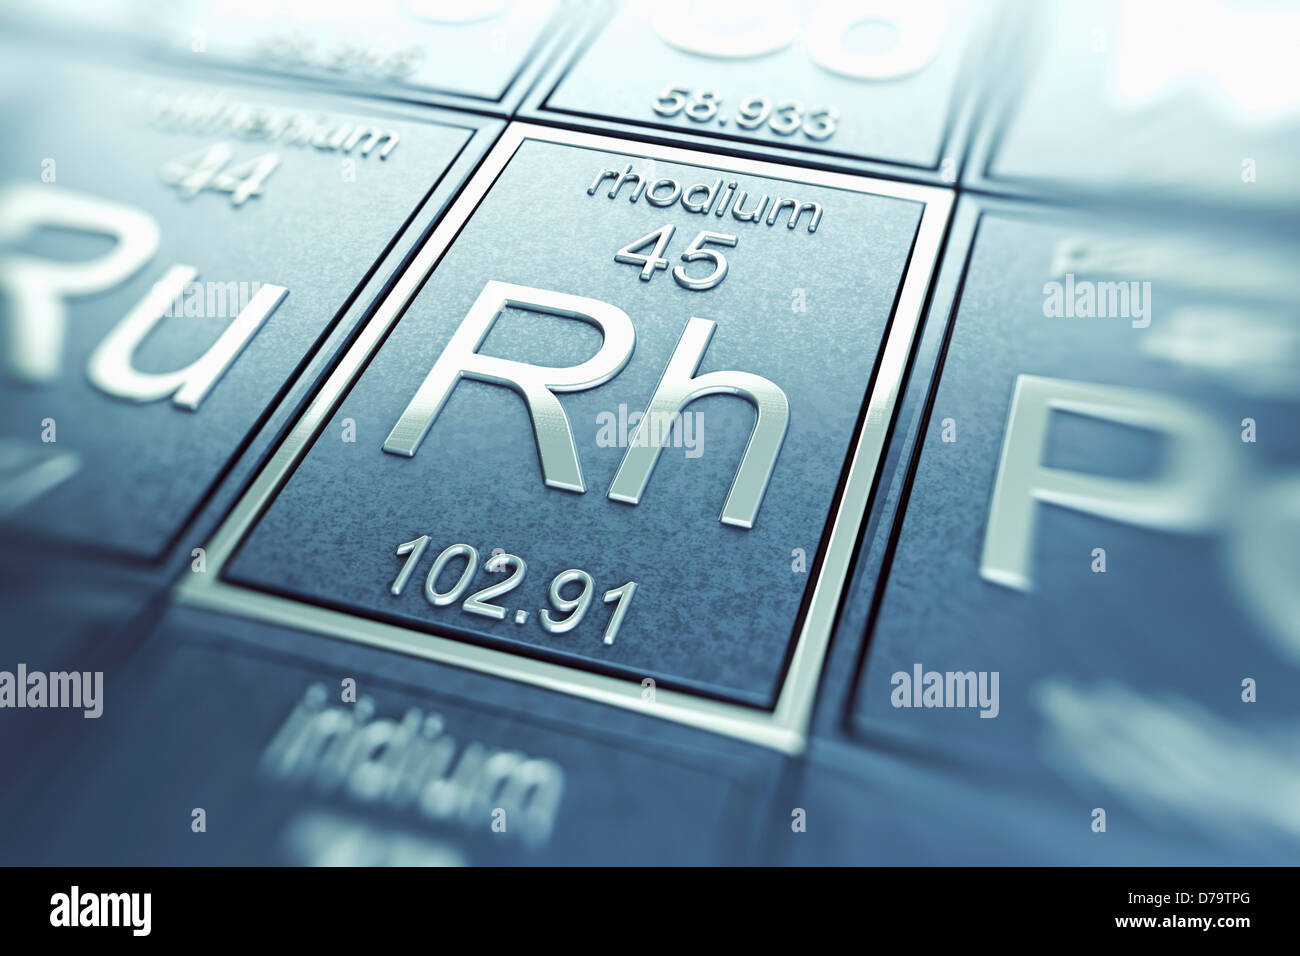 Rhodium Chemical Element) - Stock Image